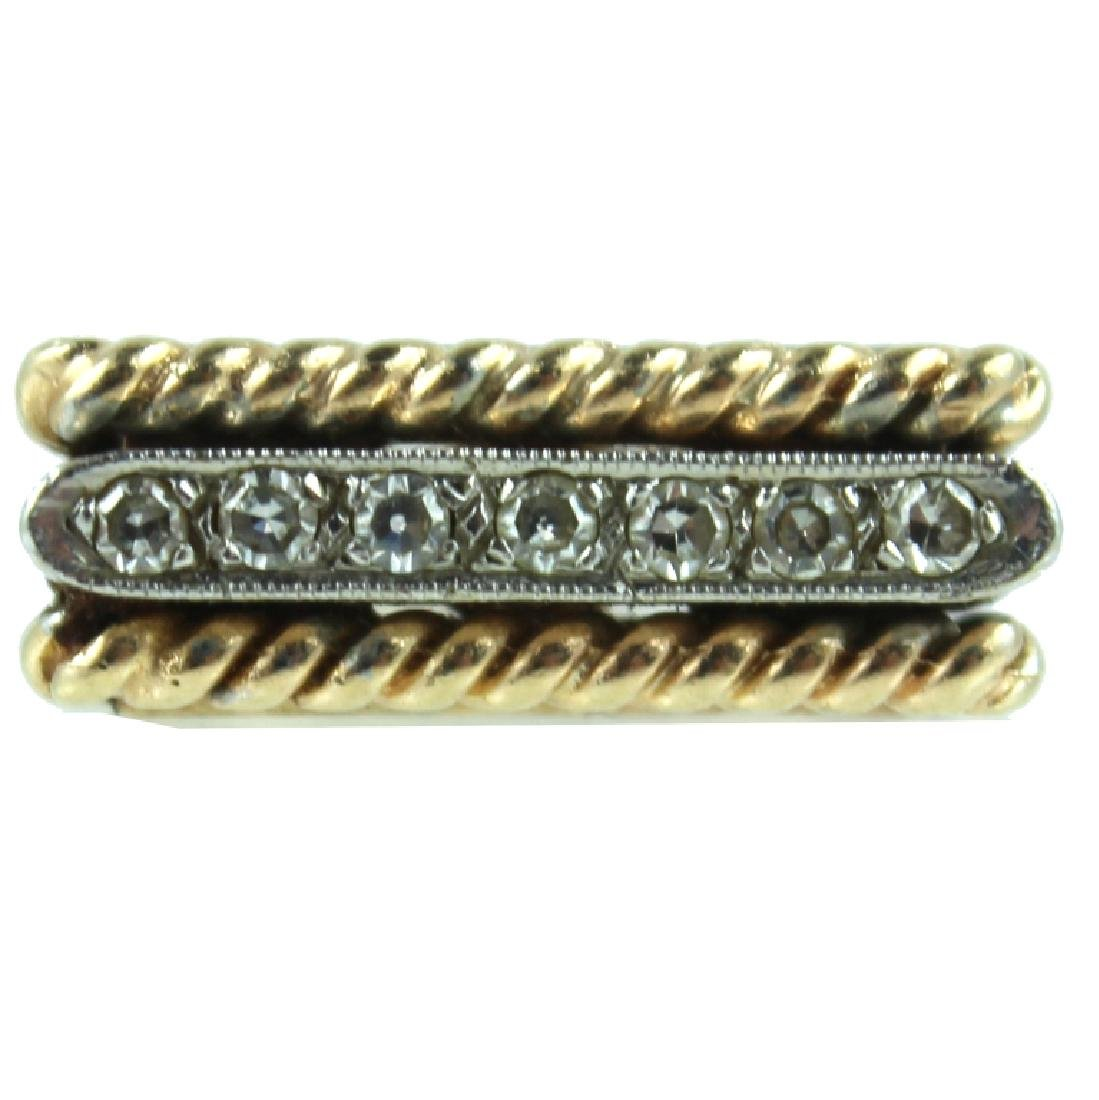 14 KARAT DIAMOND RING